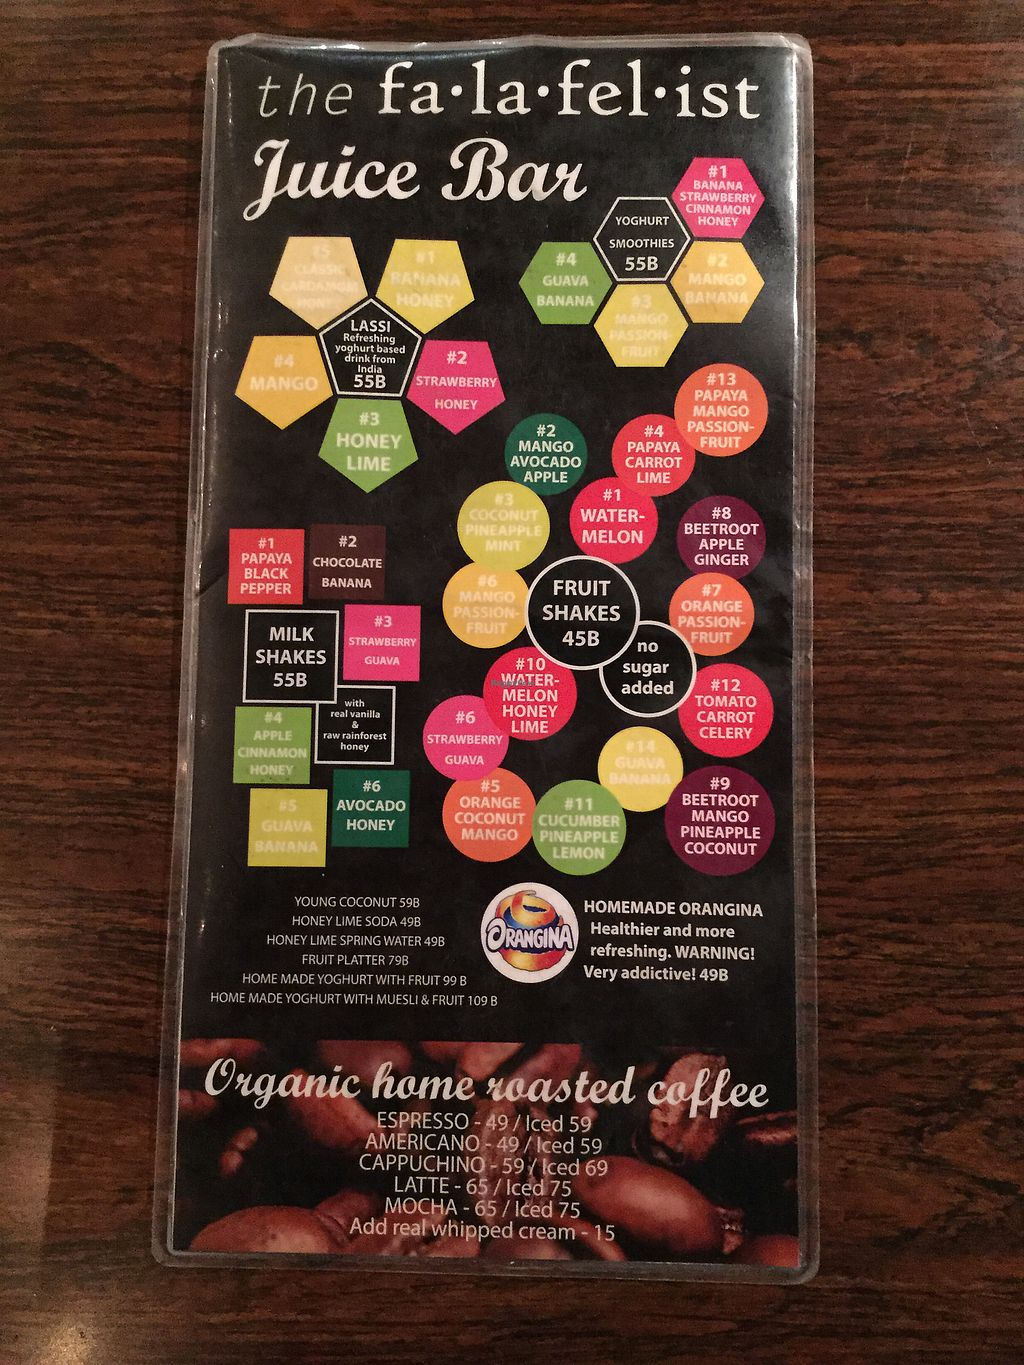 """Photo of The Falafelist  by <a href=""""/members/profile/Mike%20Munsie"""">Mike Munsie</a> <br/>juice bar menu <br/> February 9, 2018  - <a href='/contact/abuse/image/107269/356754'>Report</a>"""